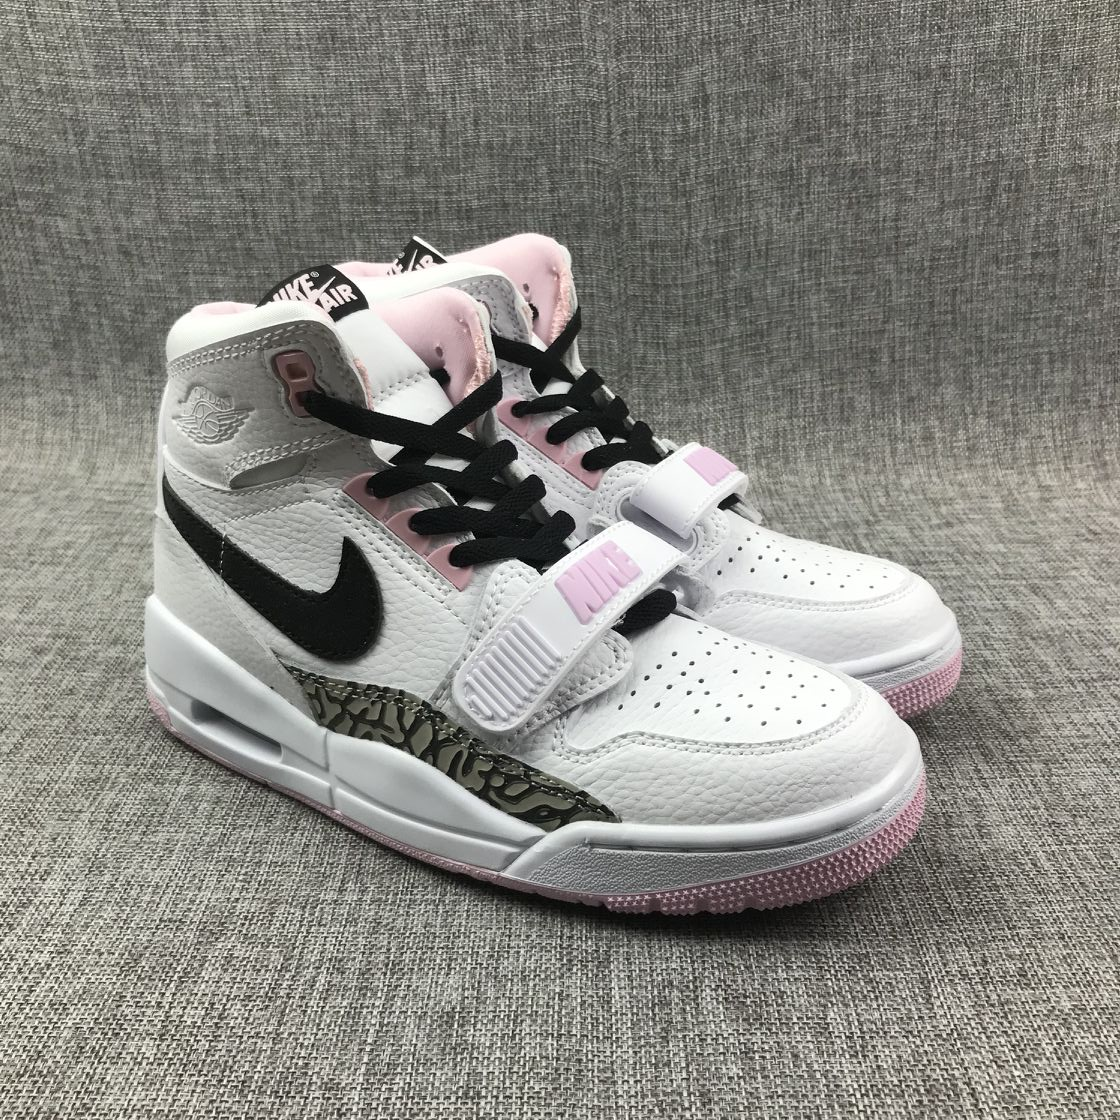 Women's 2019 Running weapon Air Jordan 3 shoes 002